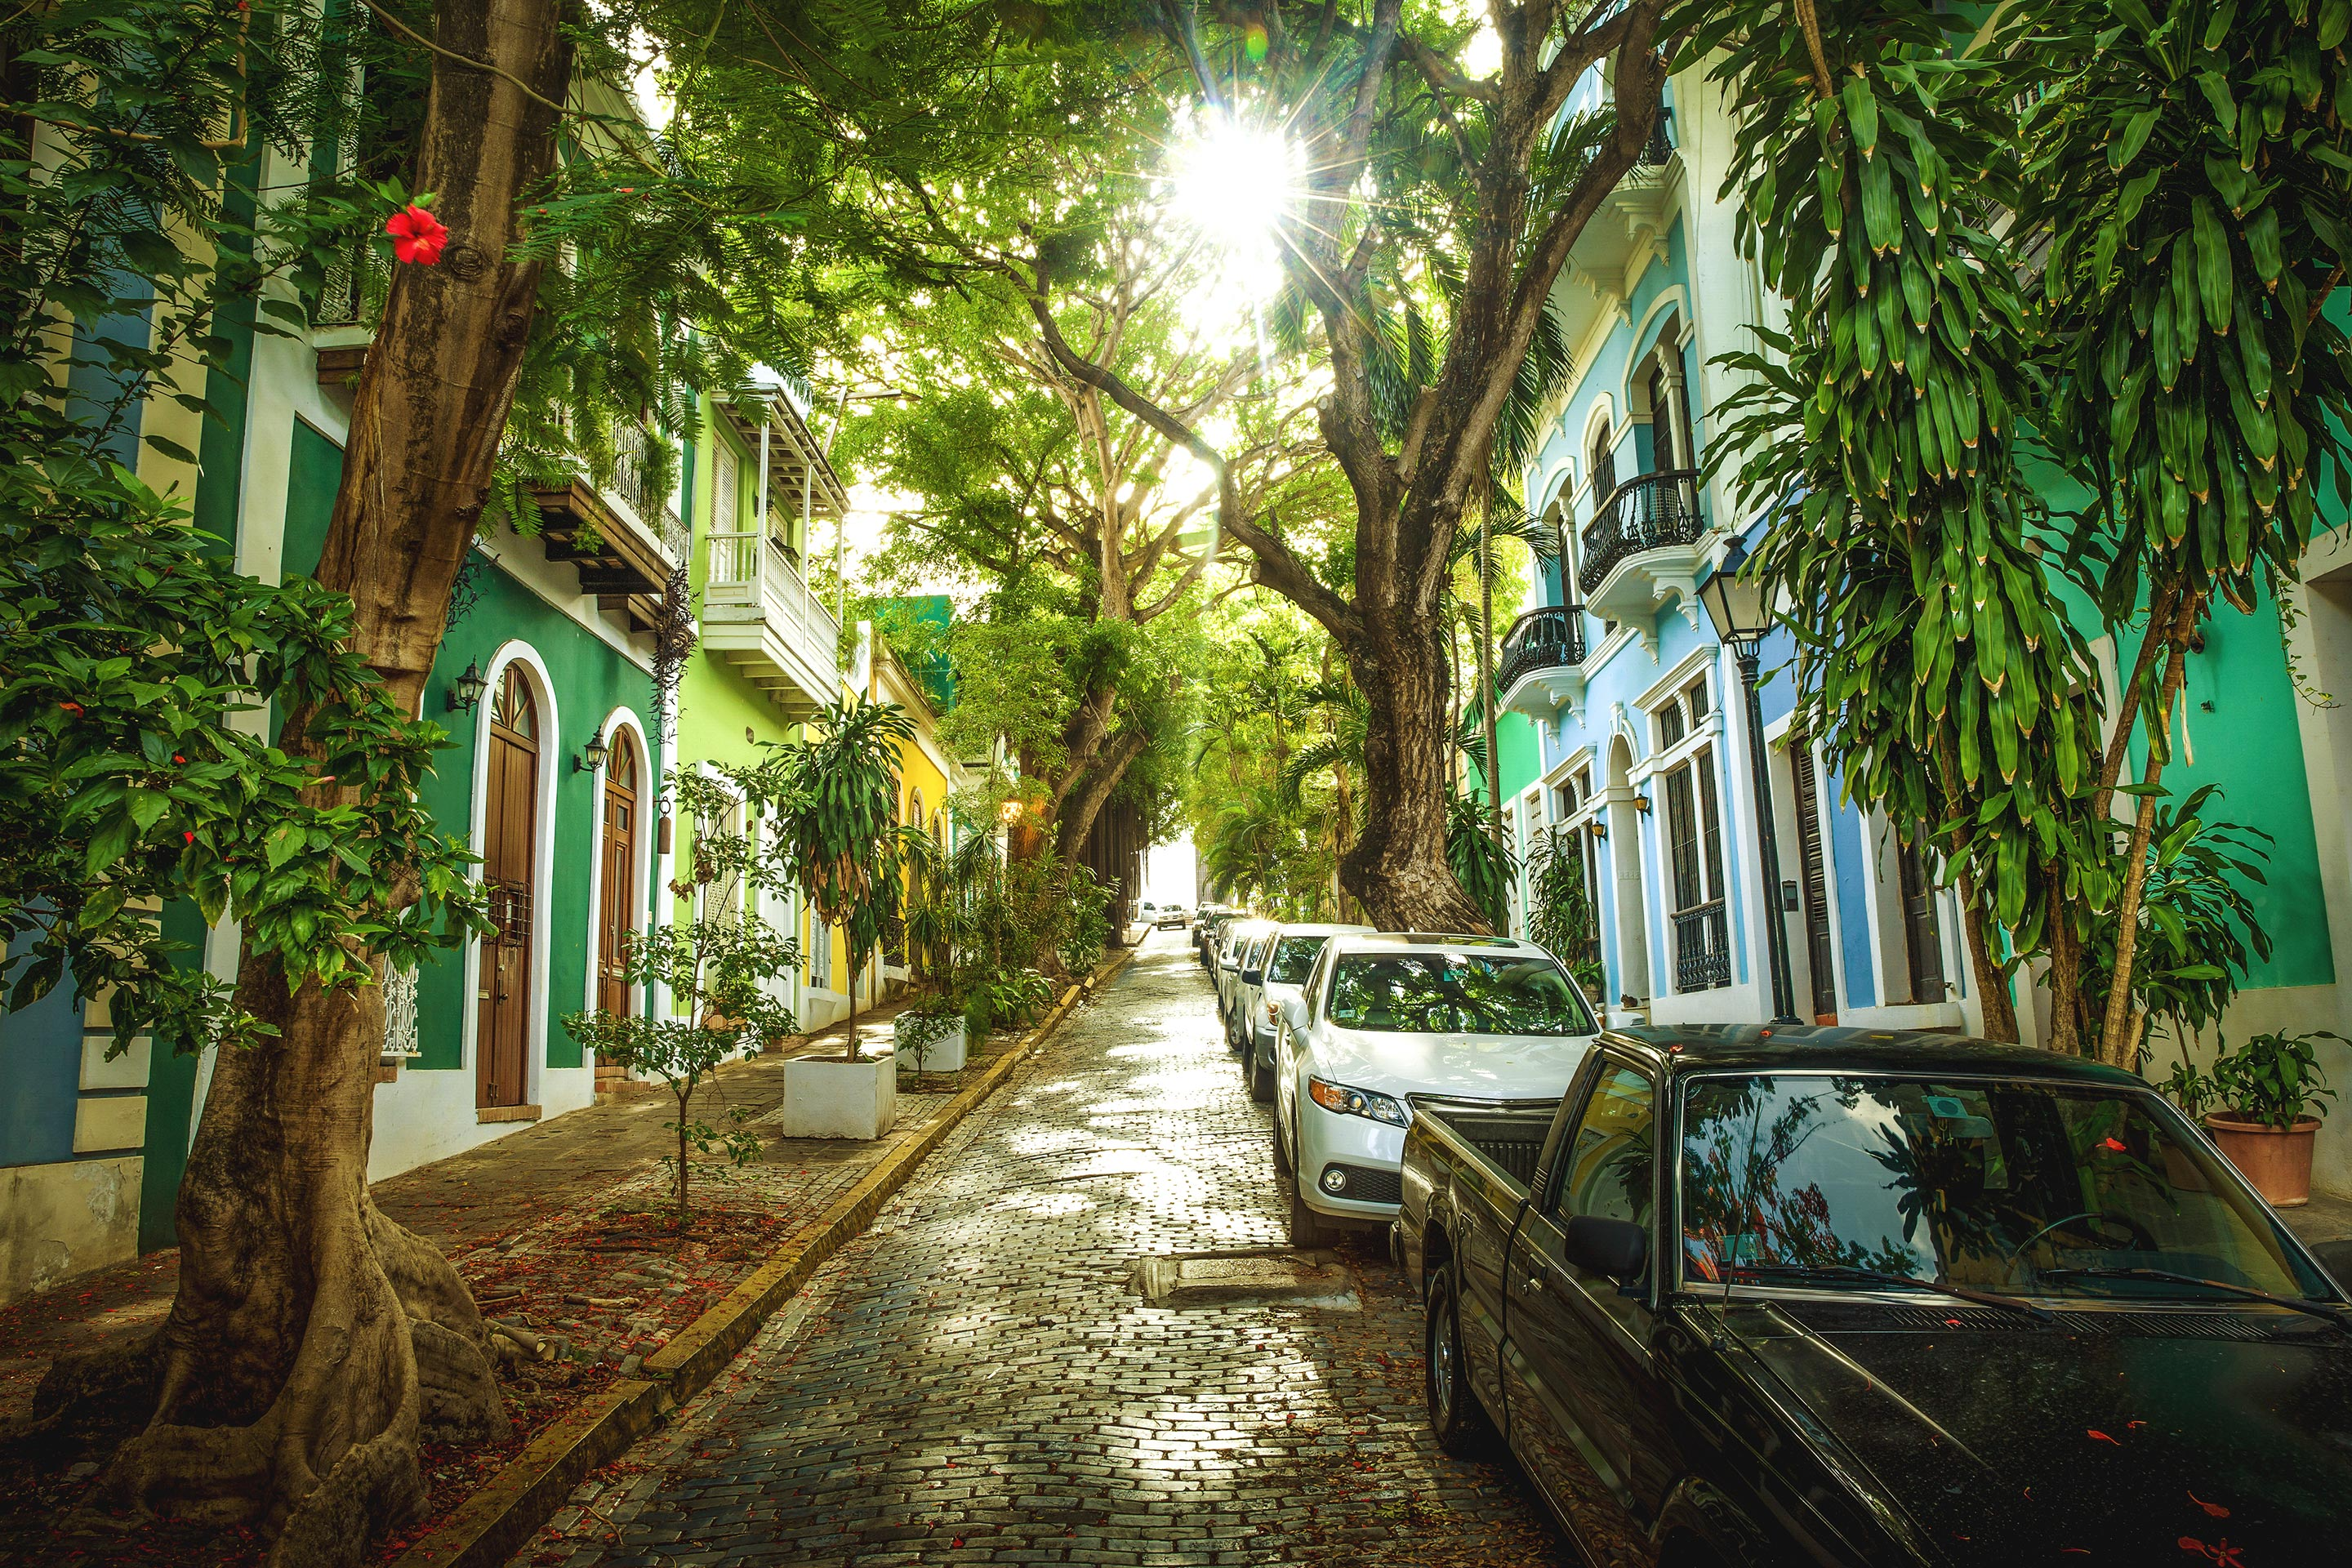 Luscious trees and the colorful streets of Old San Juan, Puerto Rico